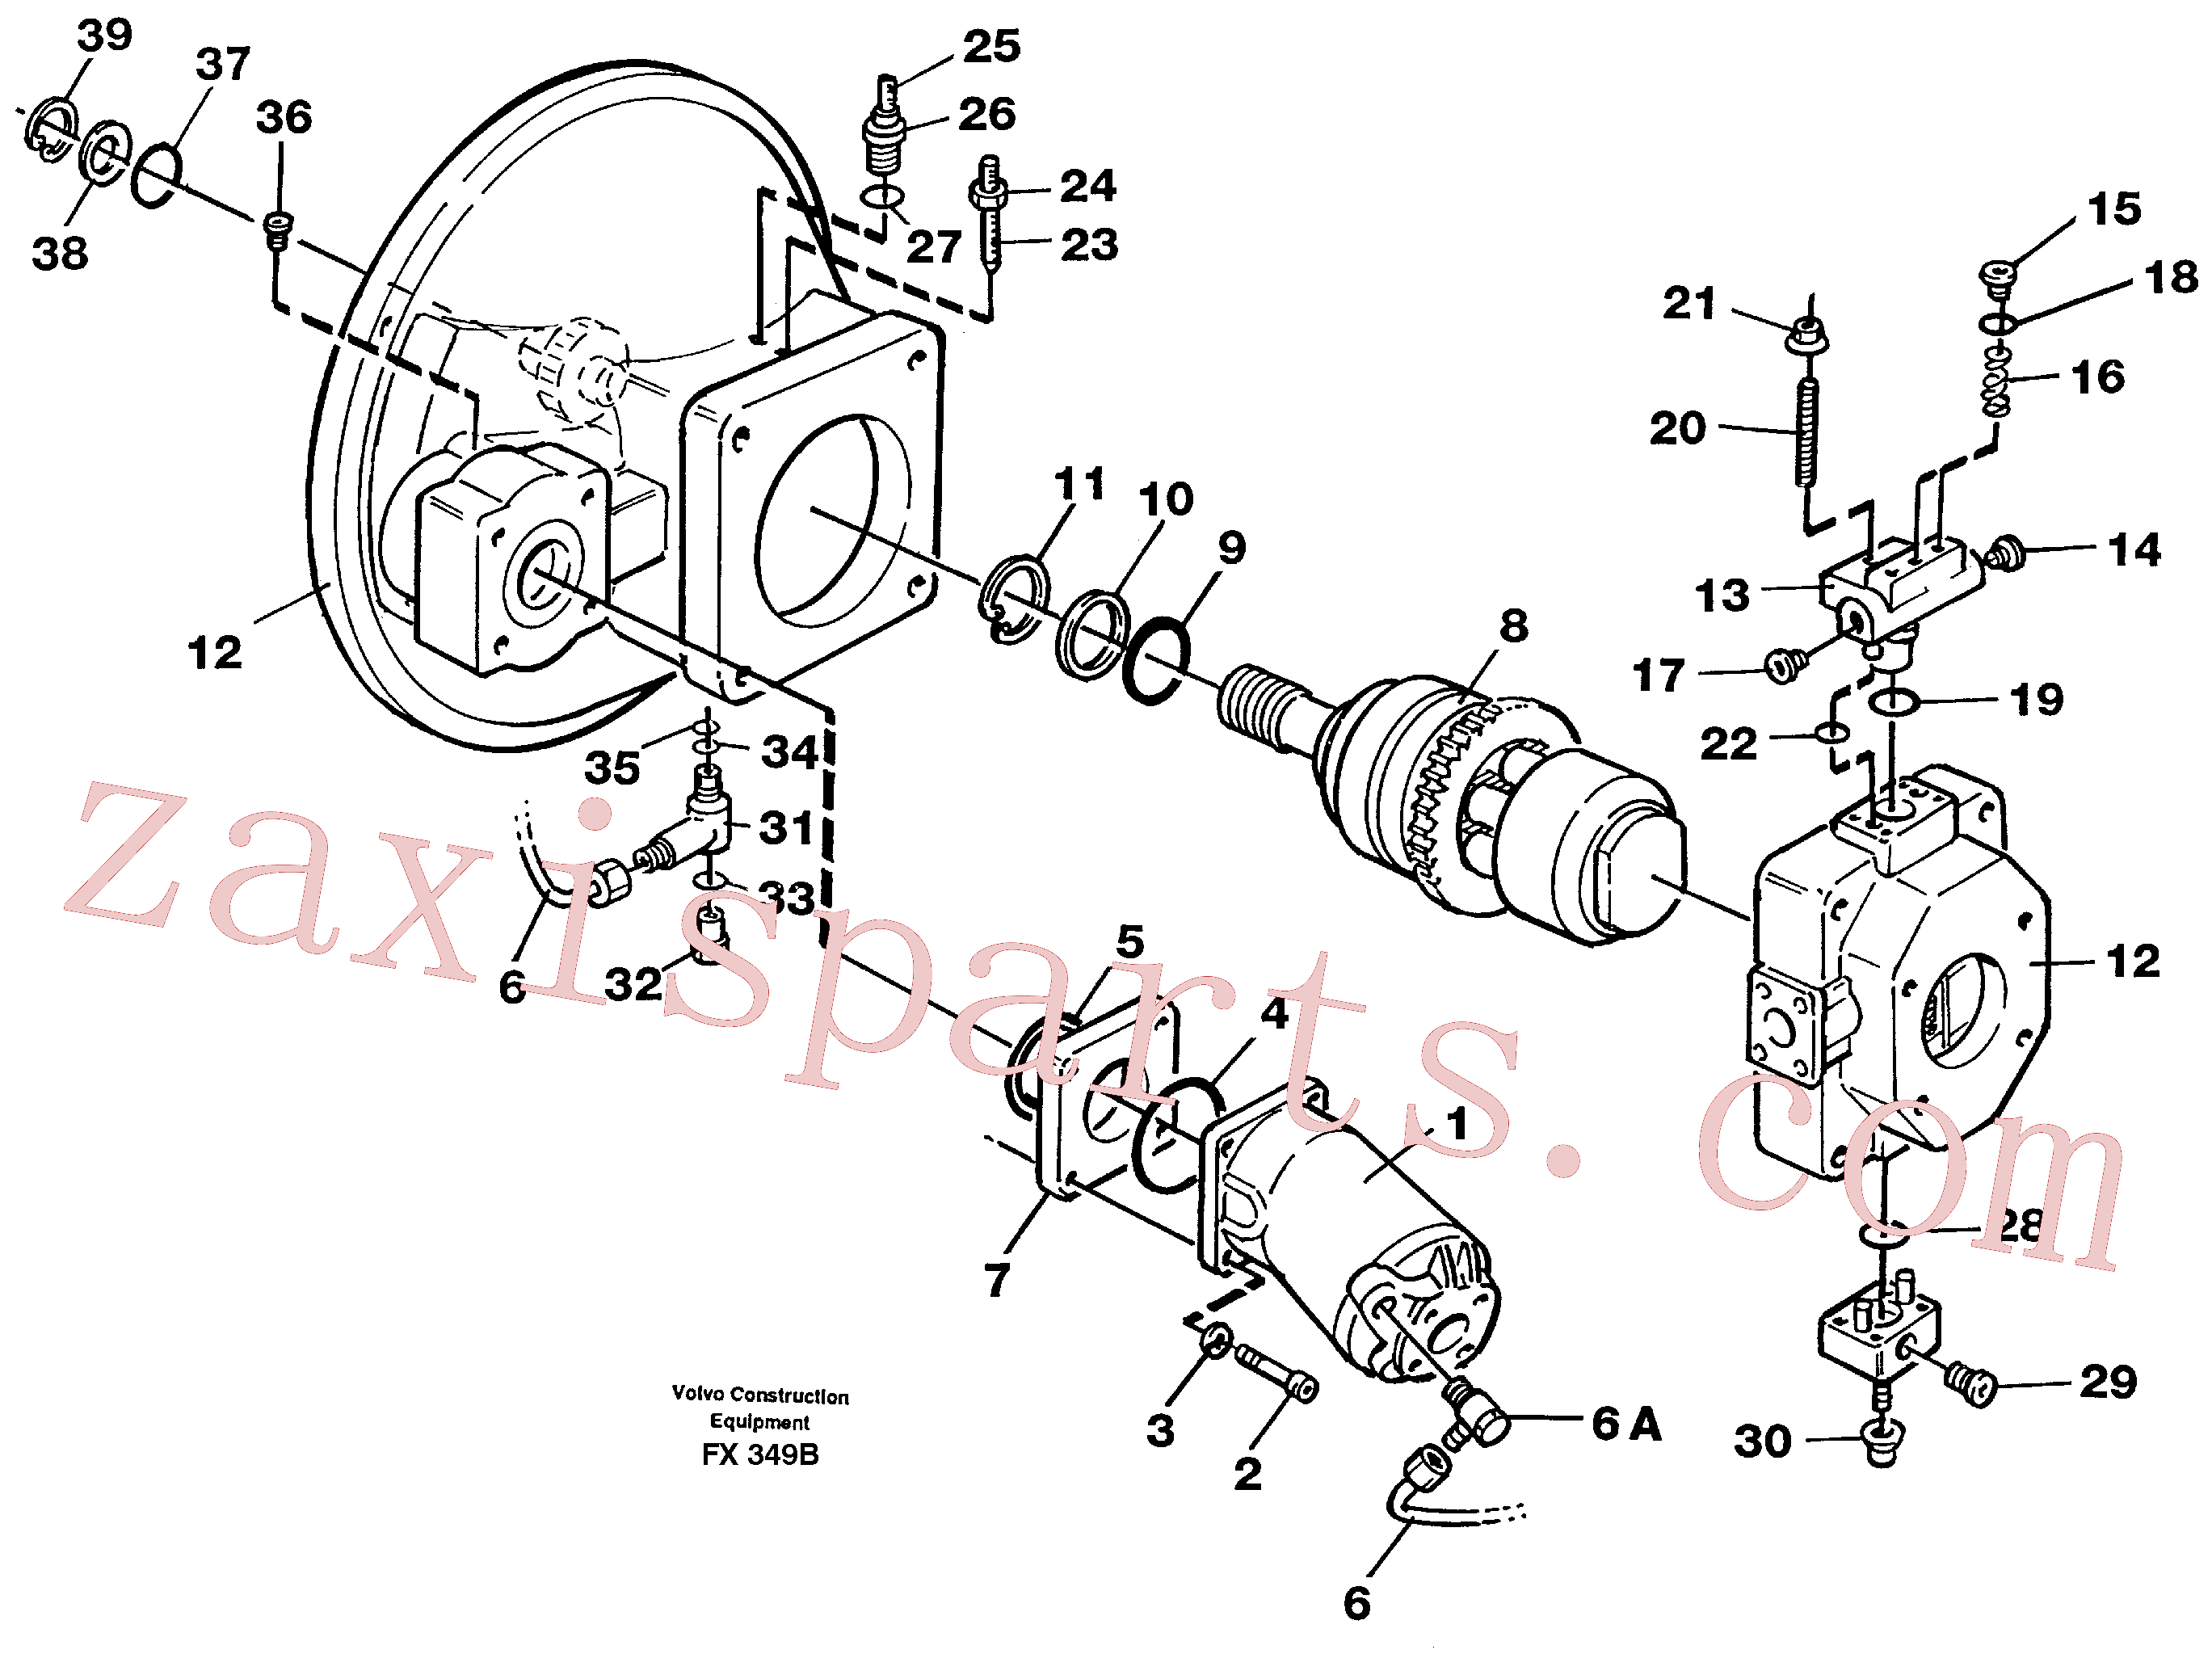 VOE11992750 for Volvo Pump gear box(FX349B assembly)